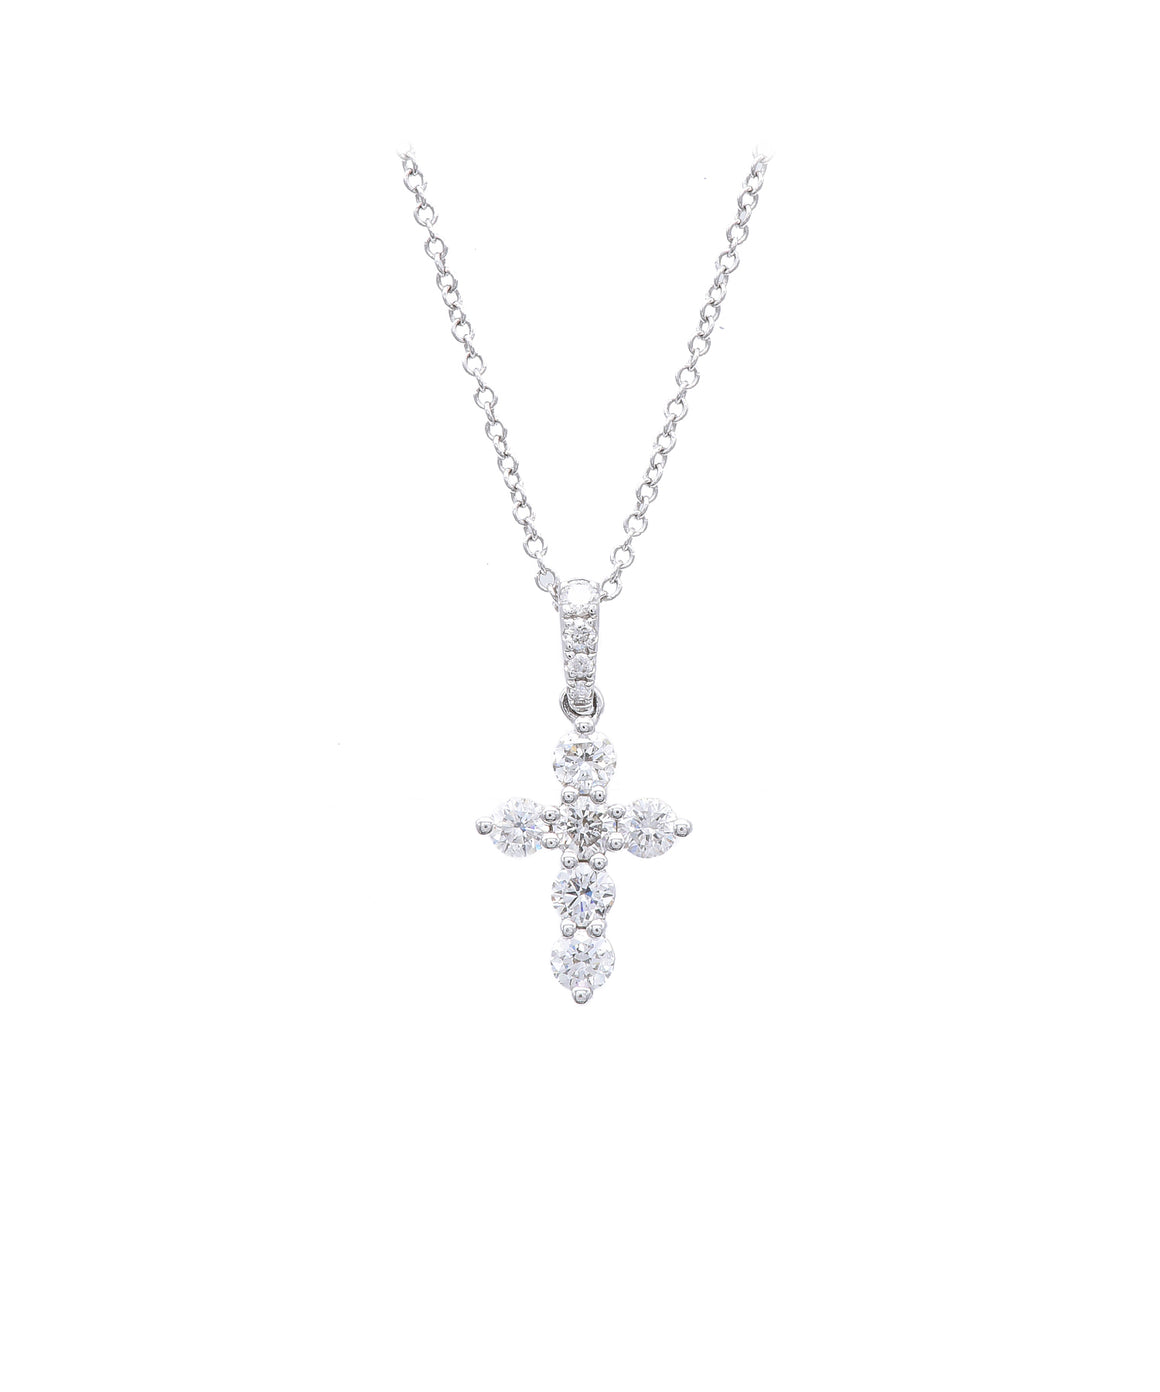 Small Cross with Diamond Bale - Lesley Ann Jewels